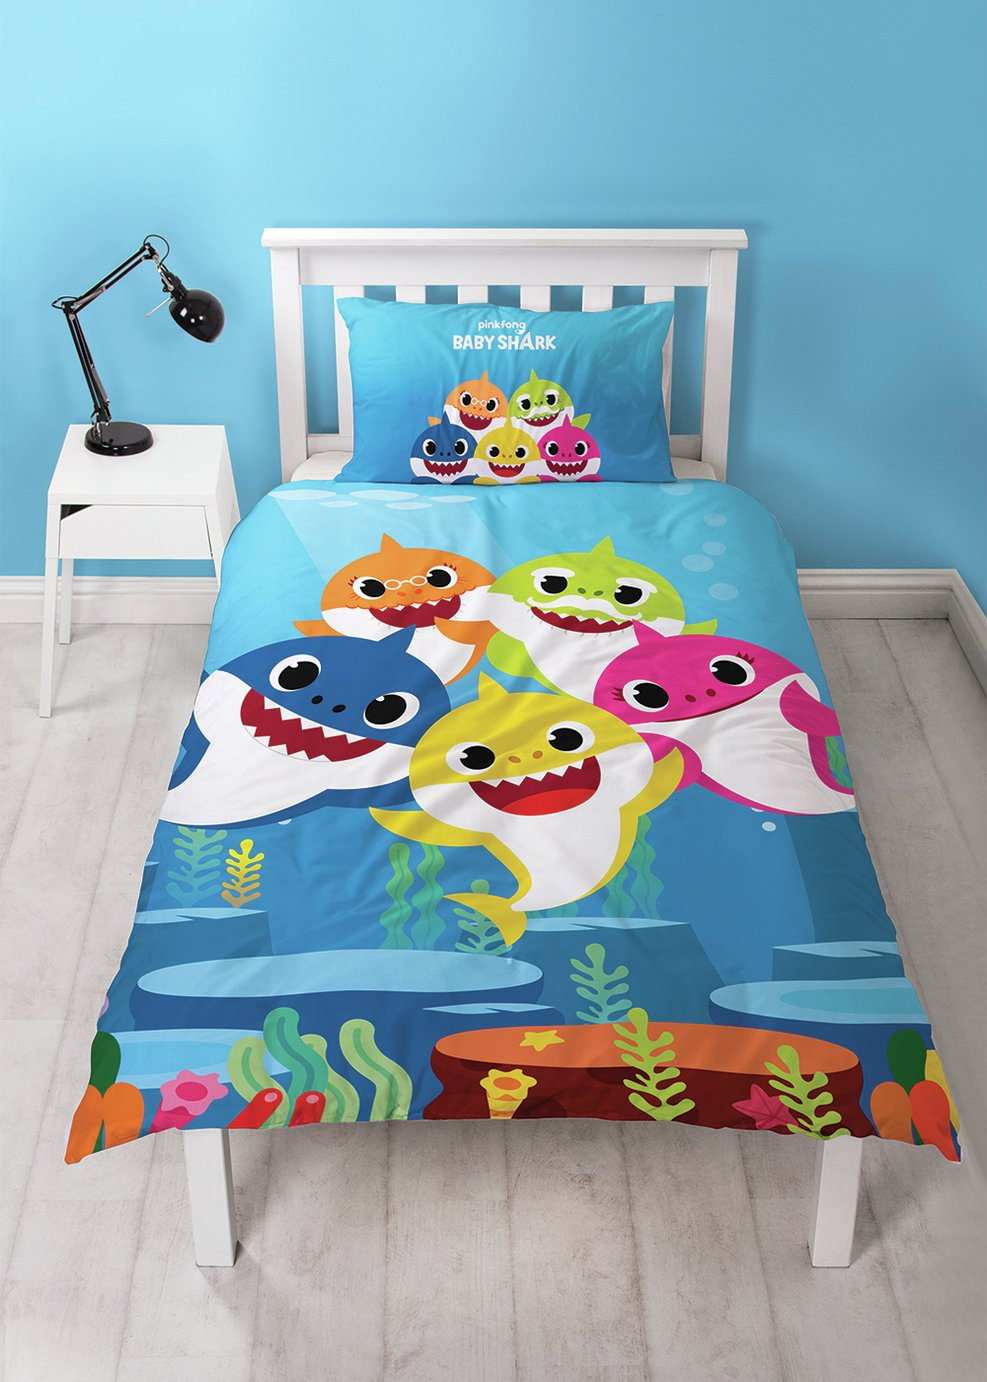 Baby Shark Underwater Children's Bedding Set - Single